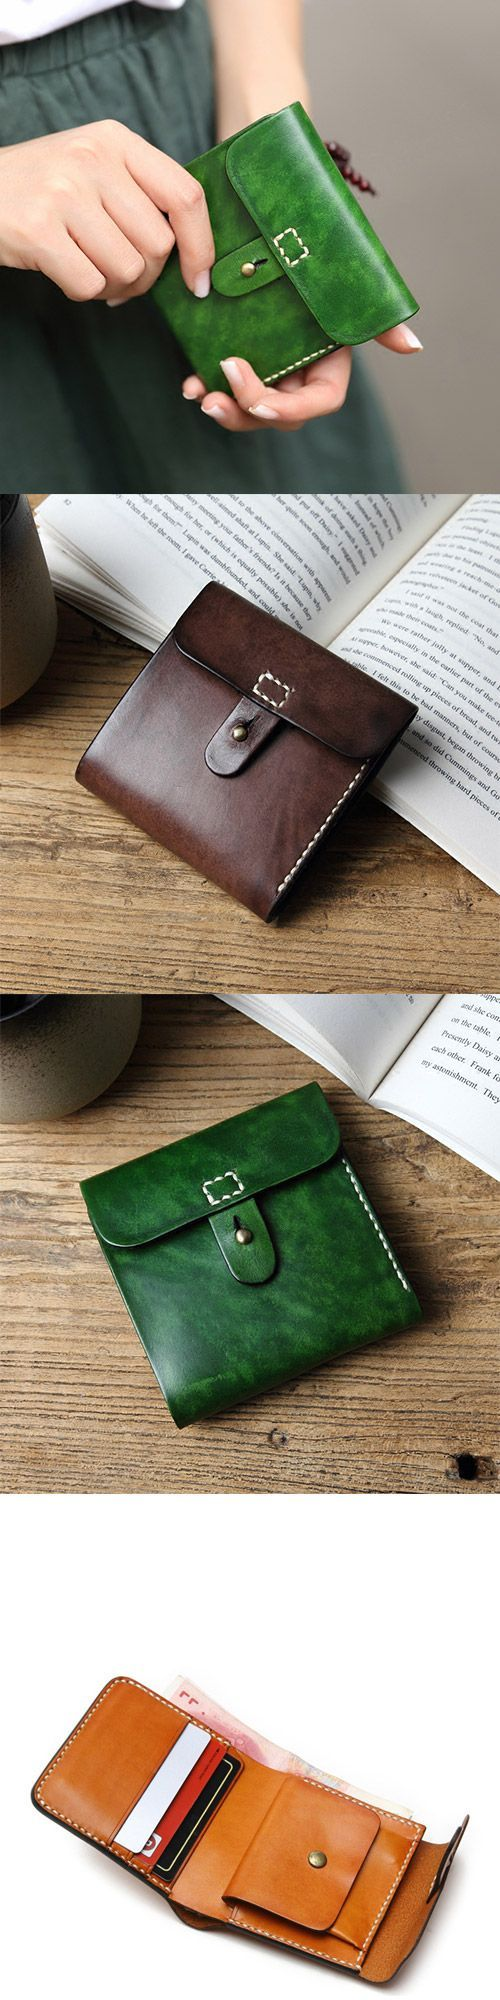 Handmade leather vintage women short wallet purse wallet - buy handbags online, women's bags and purses, leather ladies handbags *sponsored